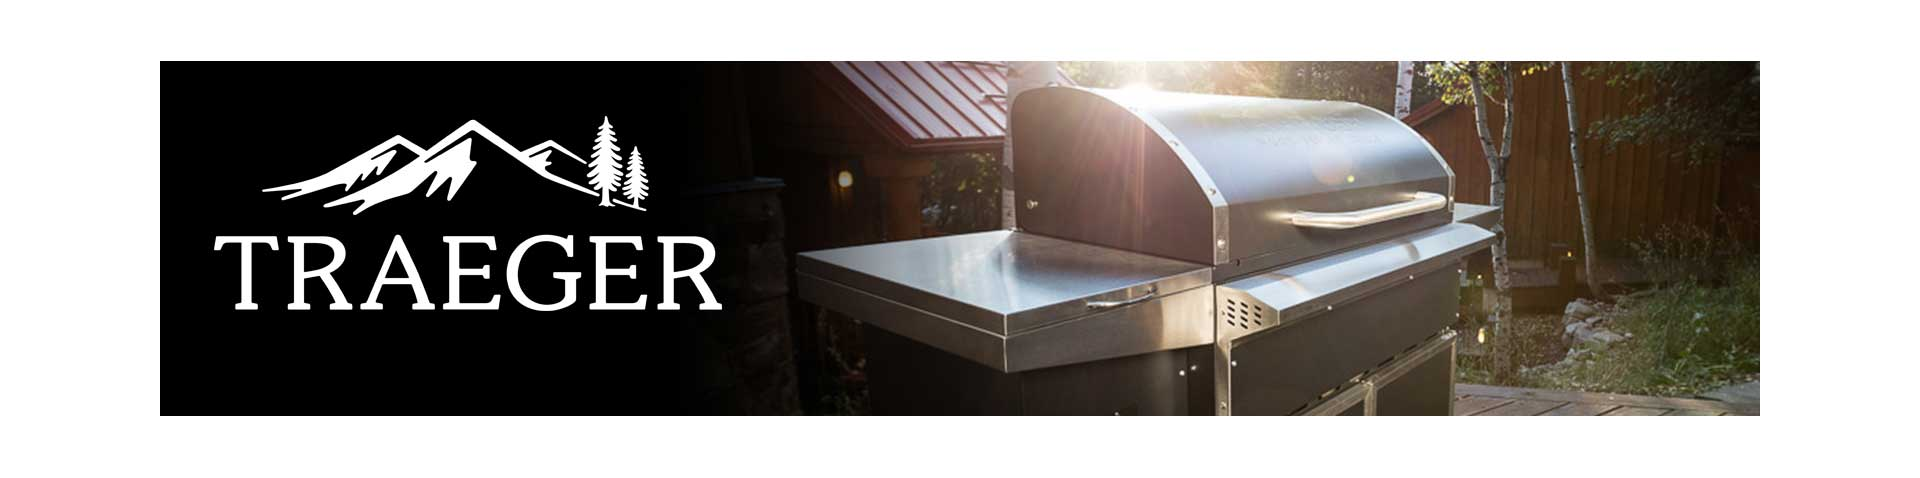 Buy Traeger Grills in Northern Minnesota